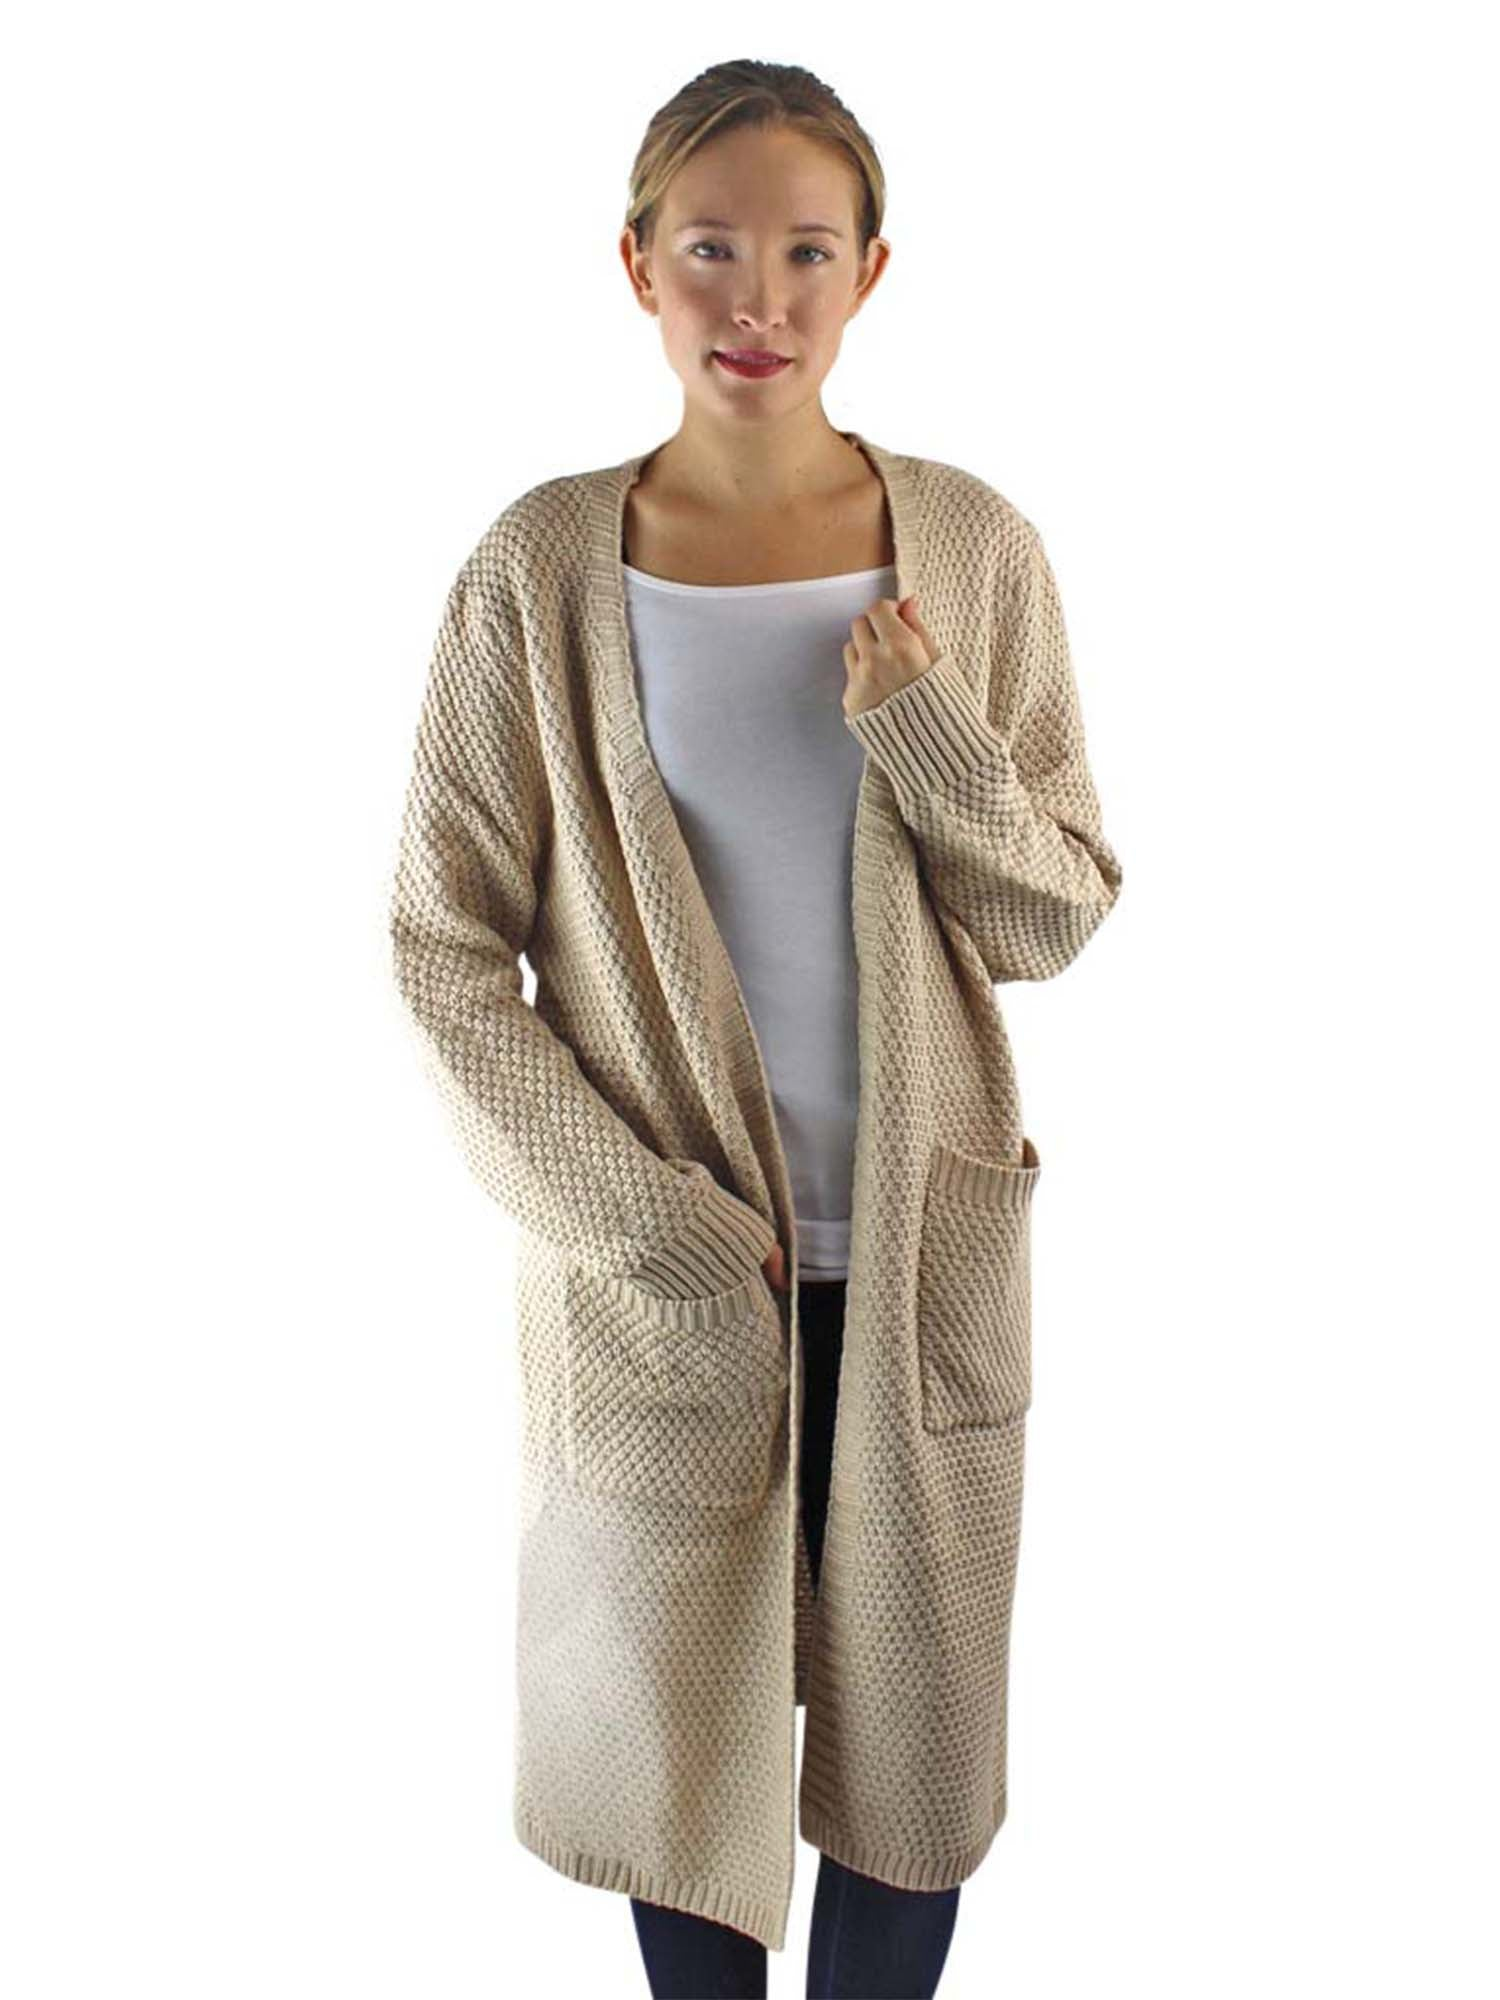 Draped Knit Cardigan Sweater With Pockets